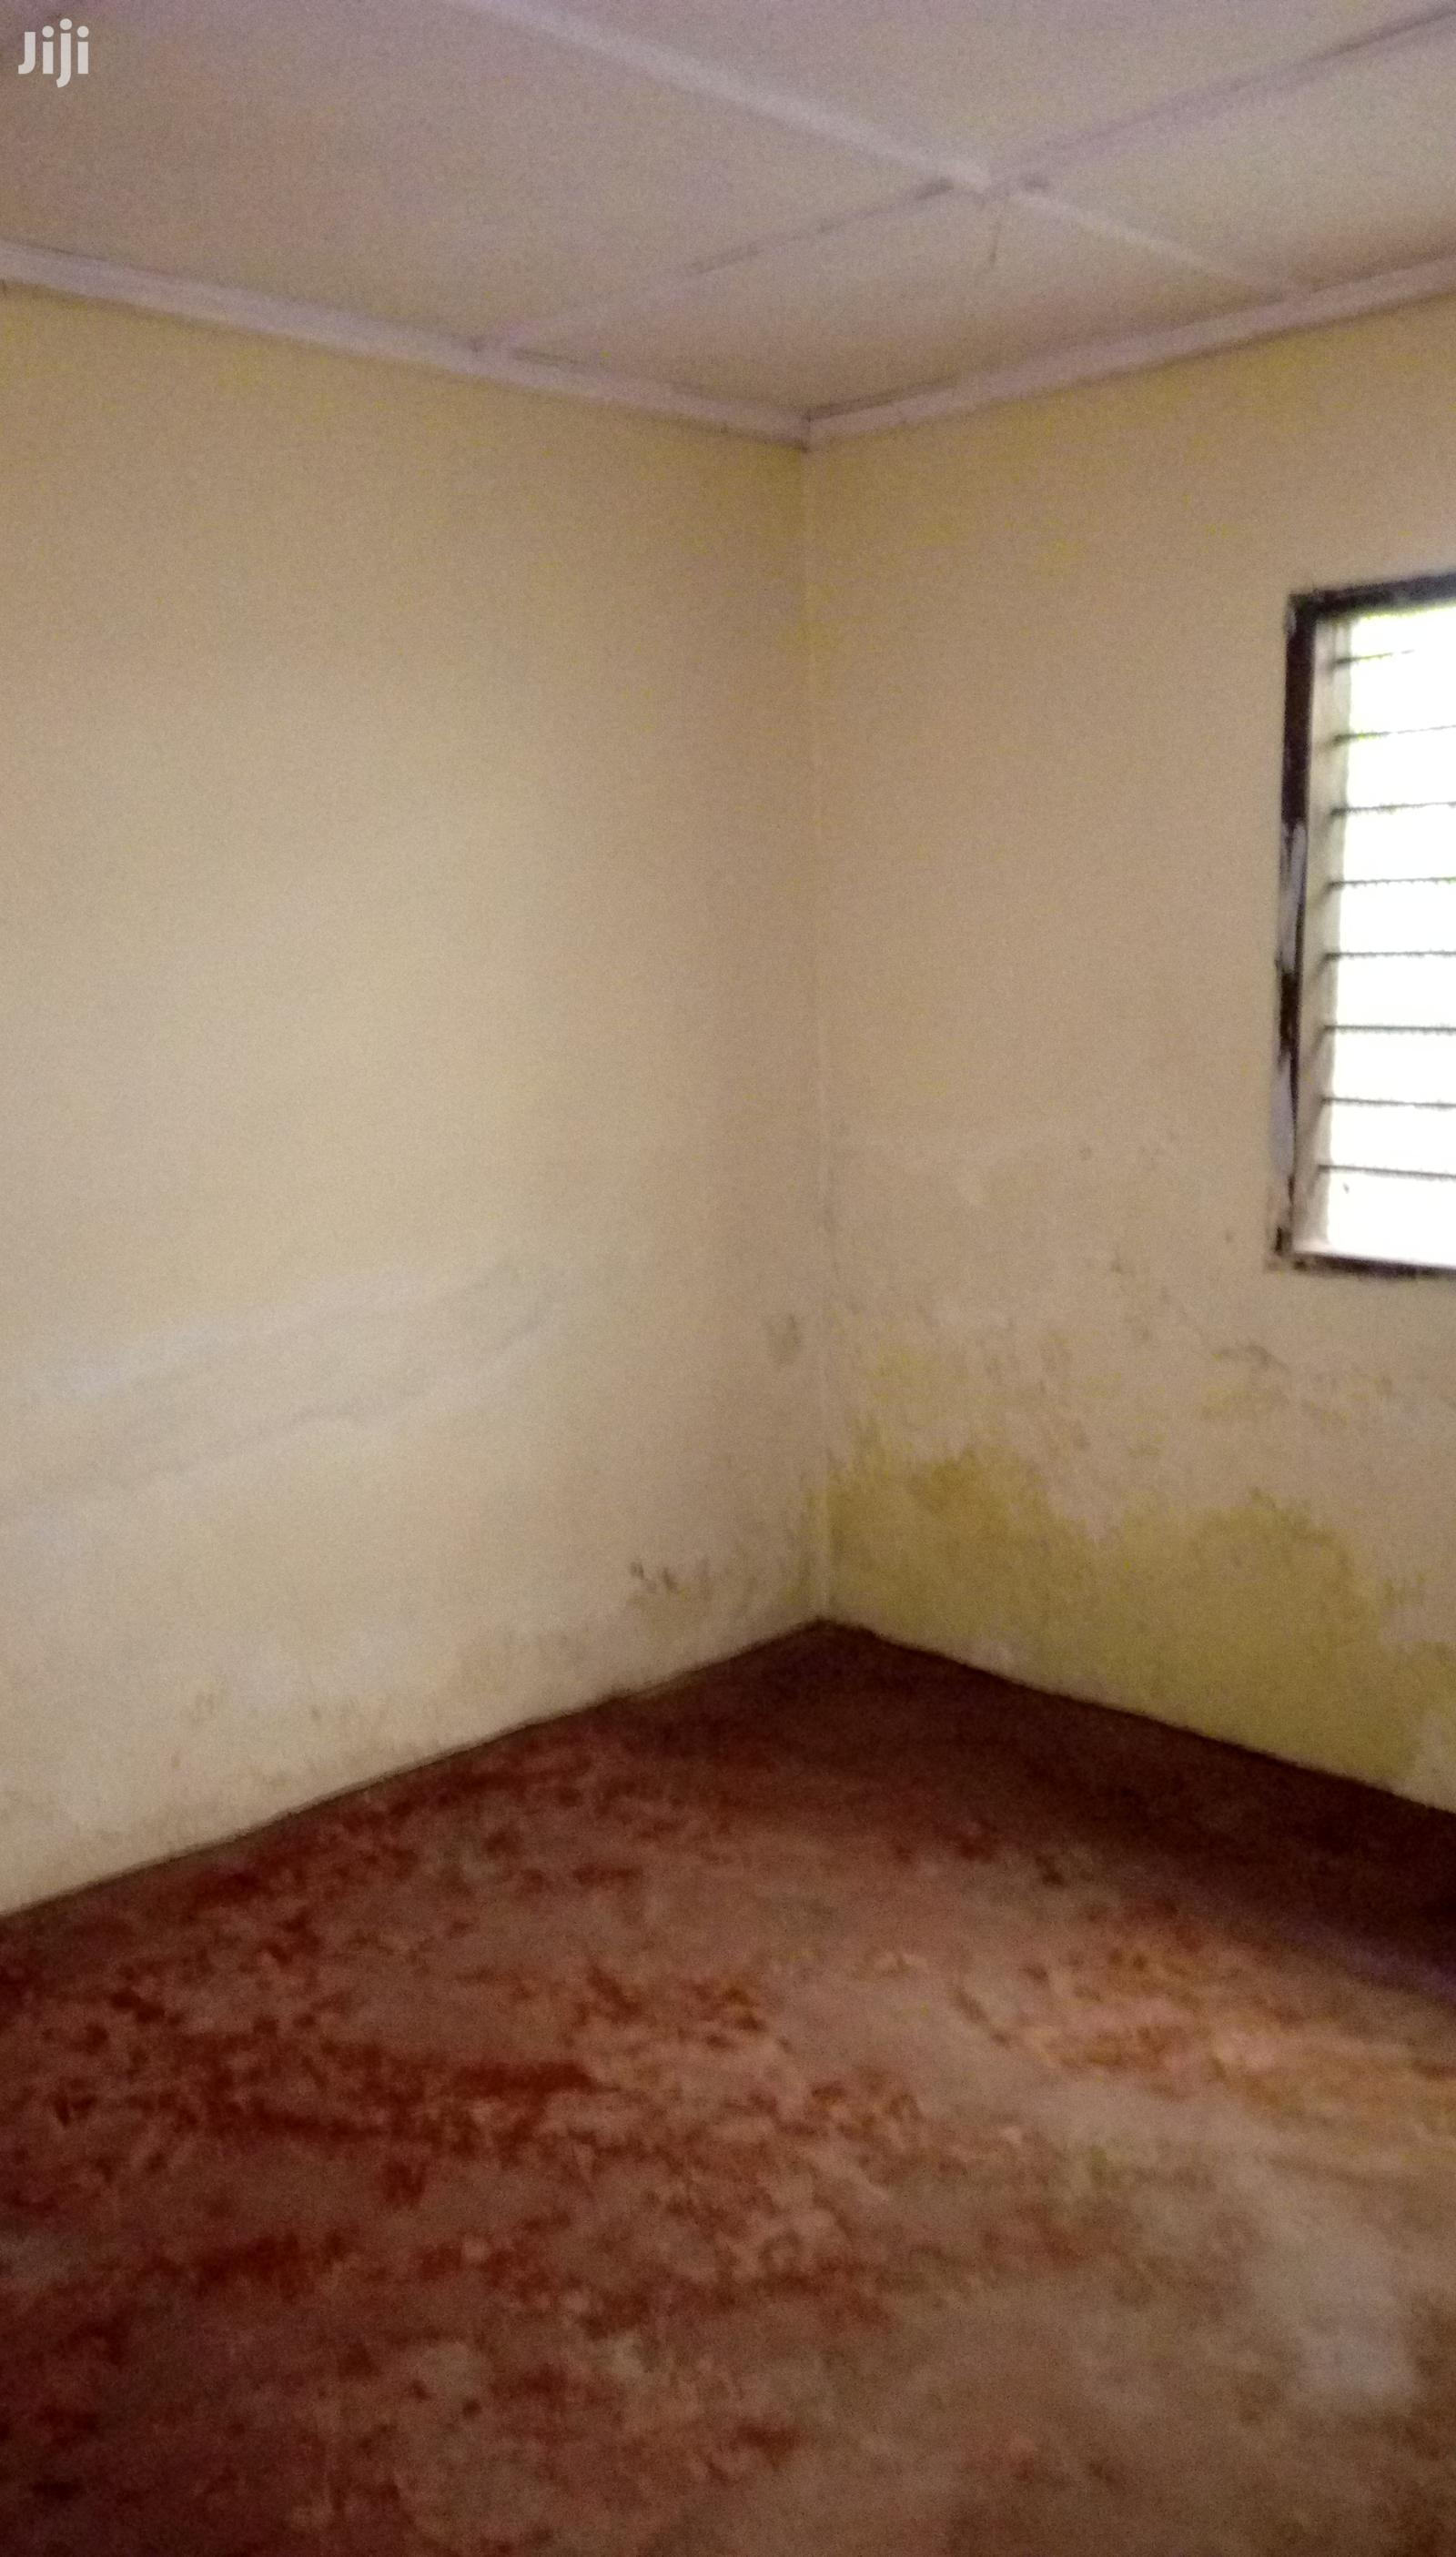 Single Room To Let At Mshomoroni (Ref Hse 260)